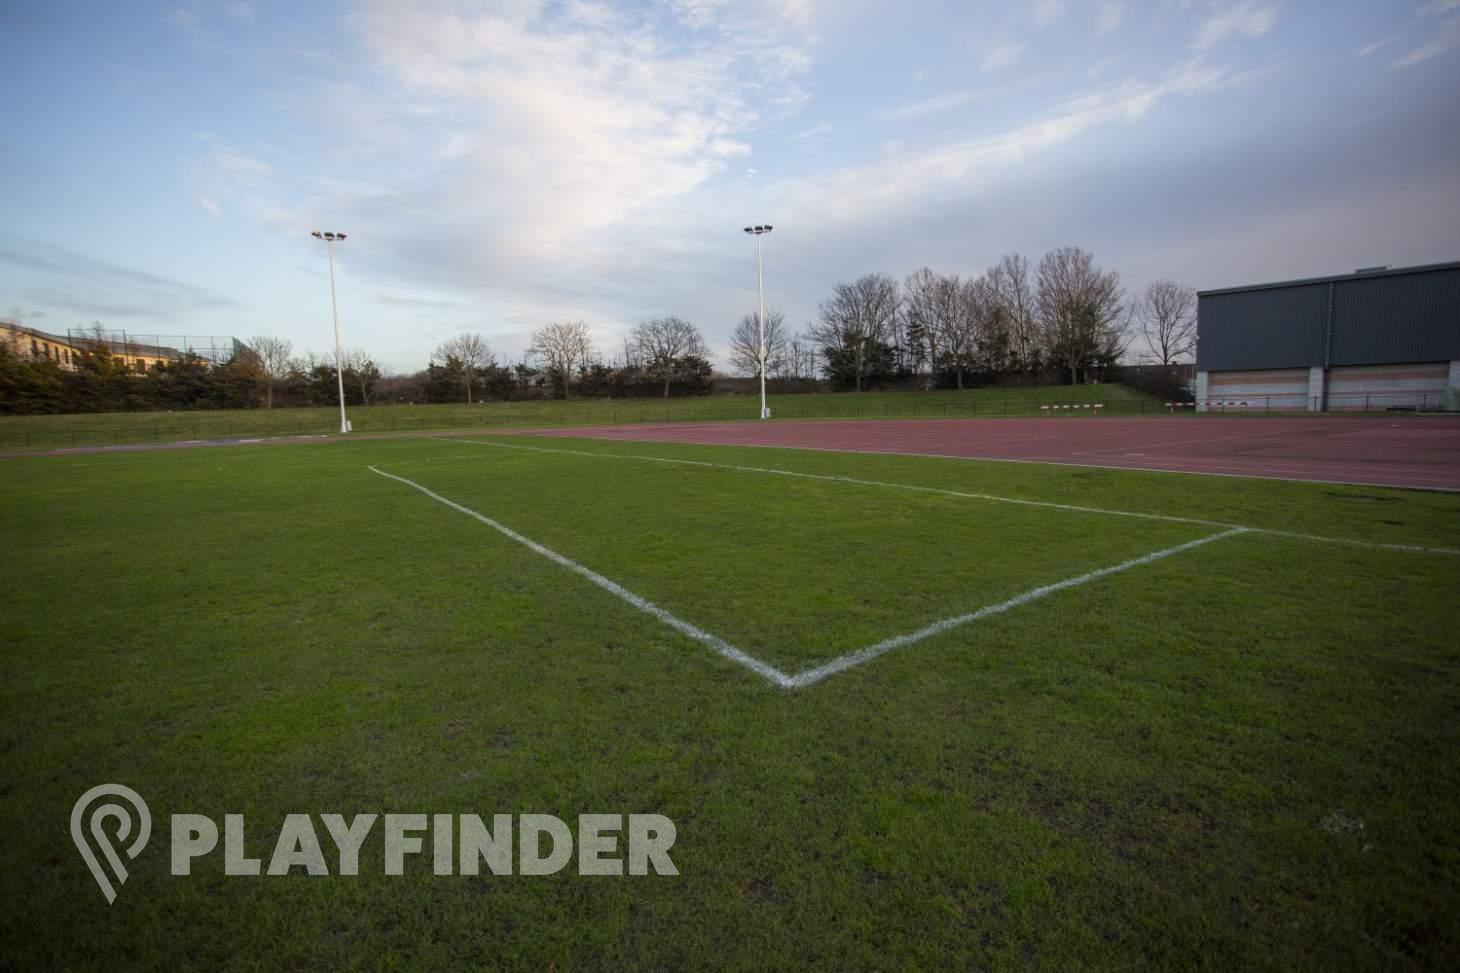 Newham Leisure Centre 11 a side | Grass football pitch